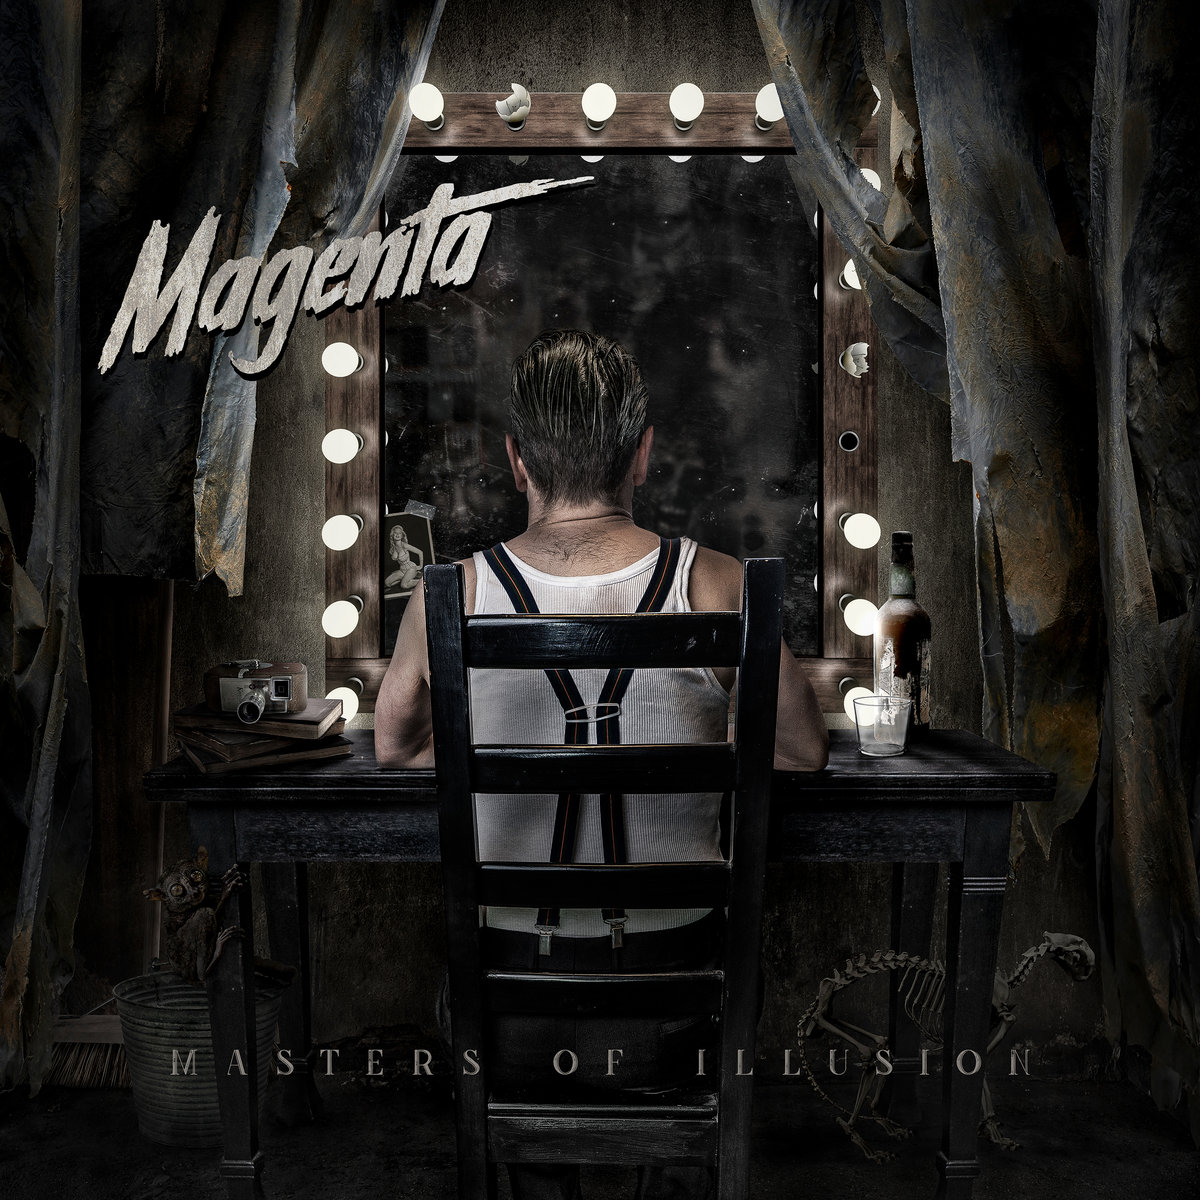 Masters of Illusion - MAGENTA